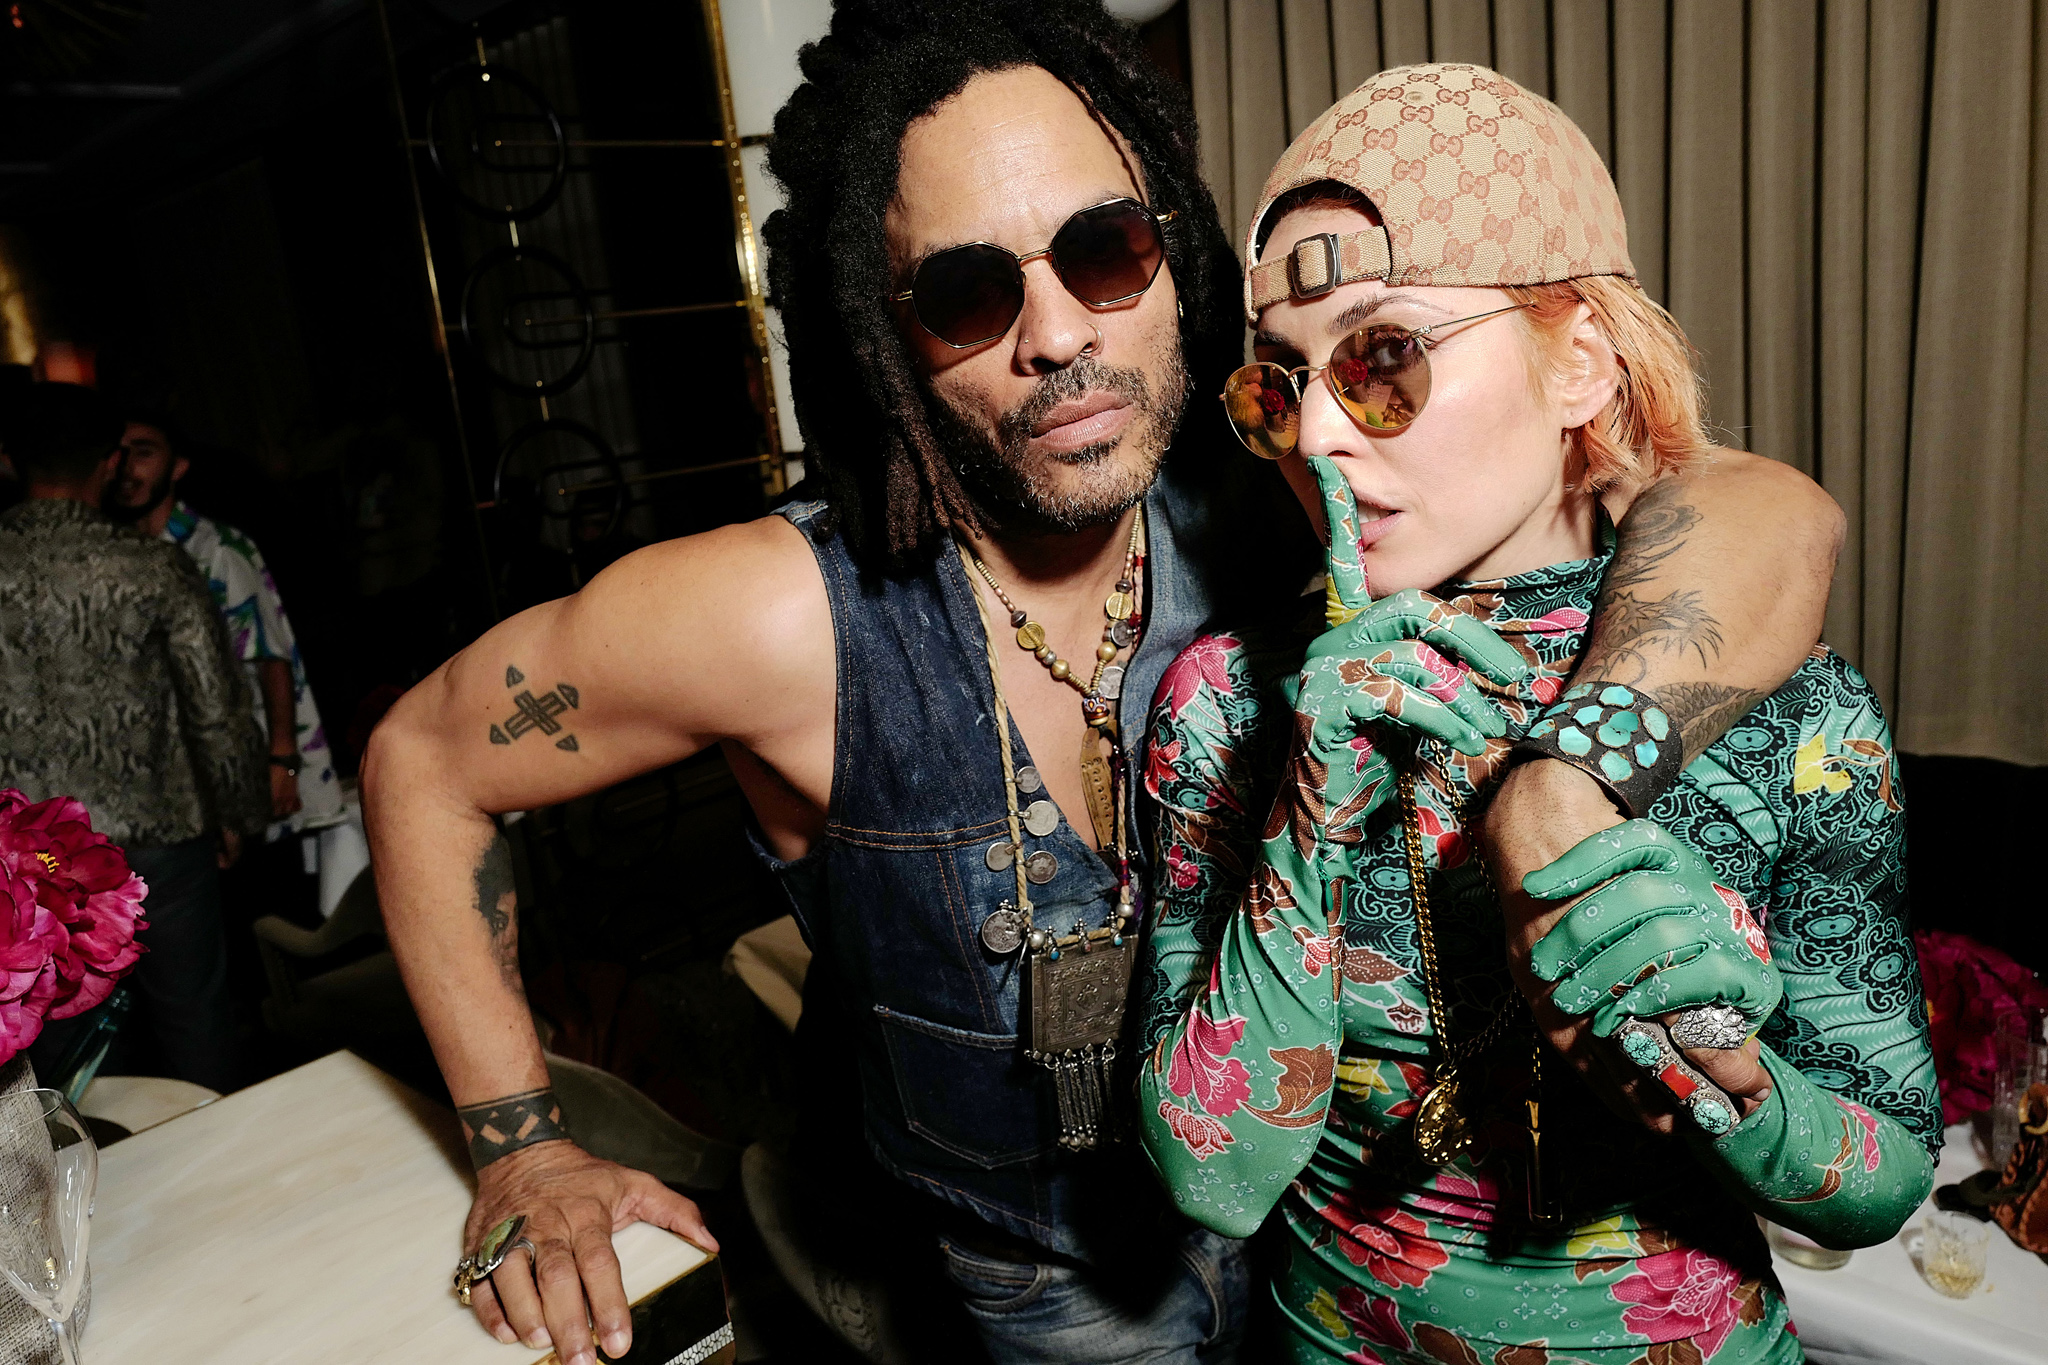 Lenny Kravitz and Noomi Rapace